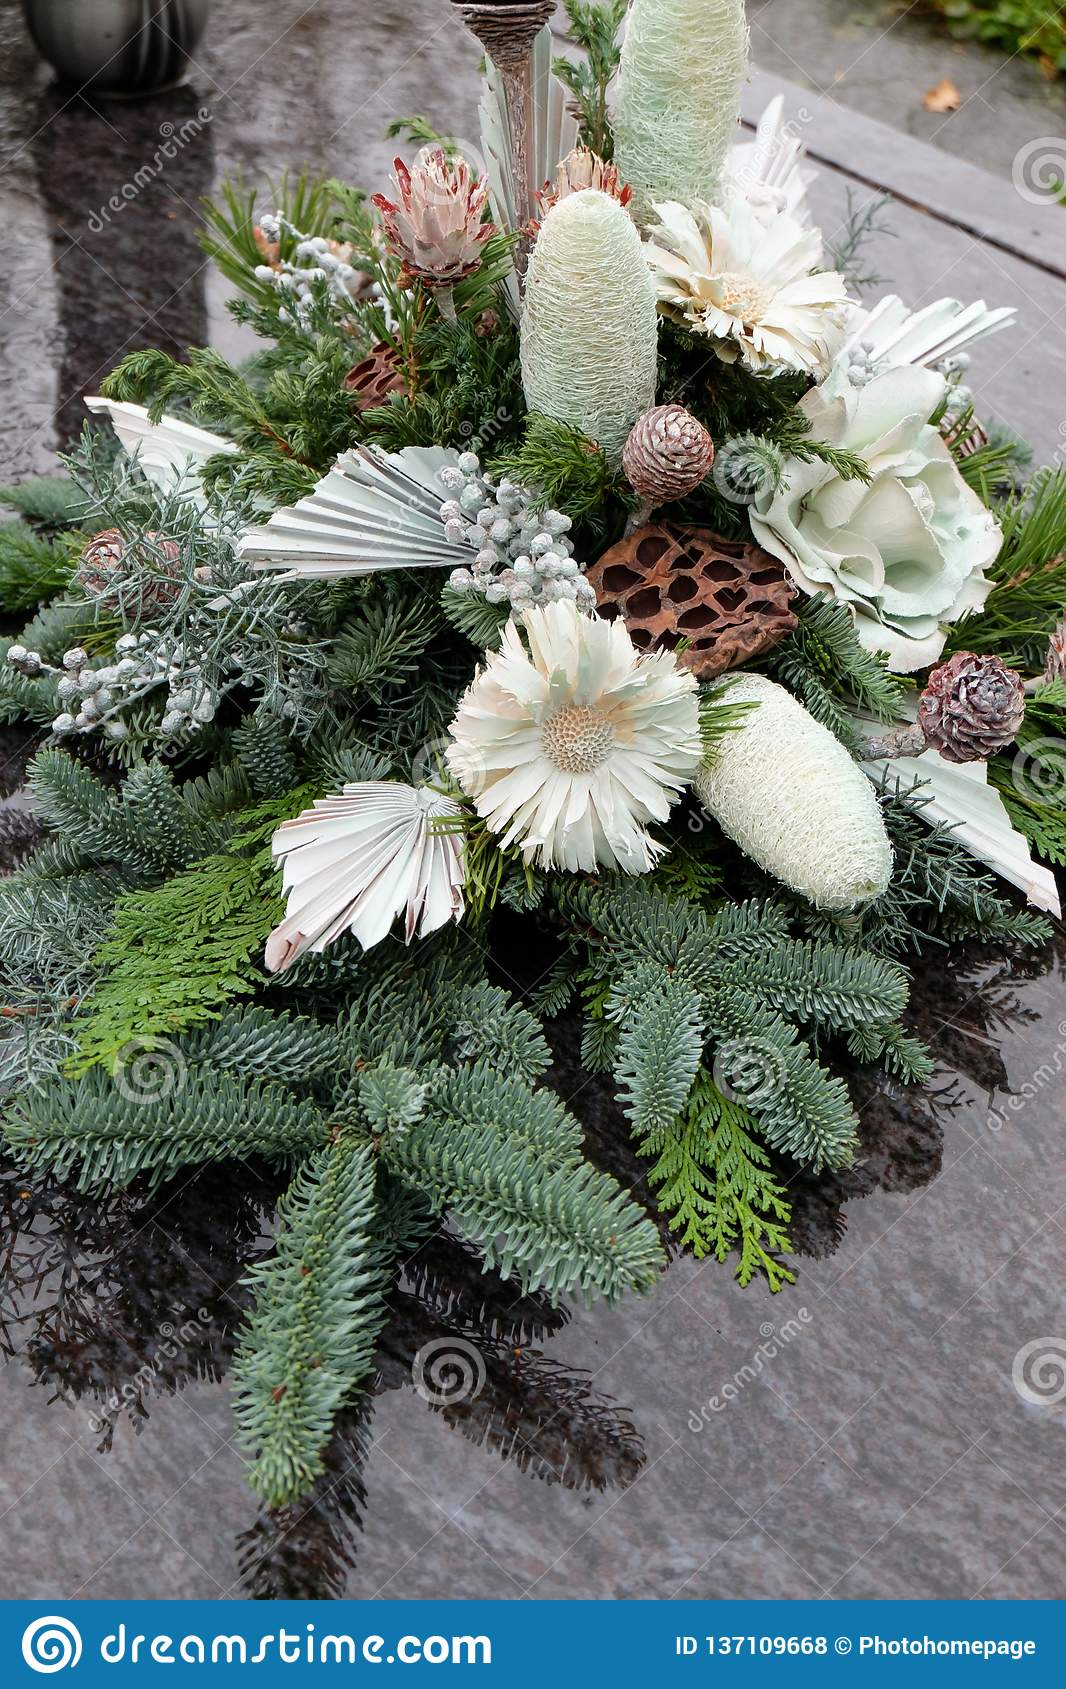 1 023 Floral Grave Decoration Photos Free Royalty Free Stock Photos From Dreamstime